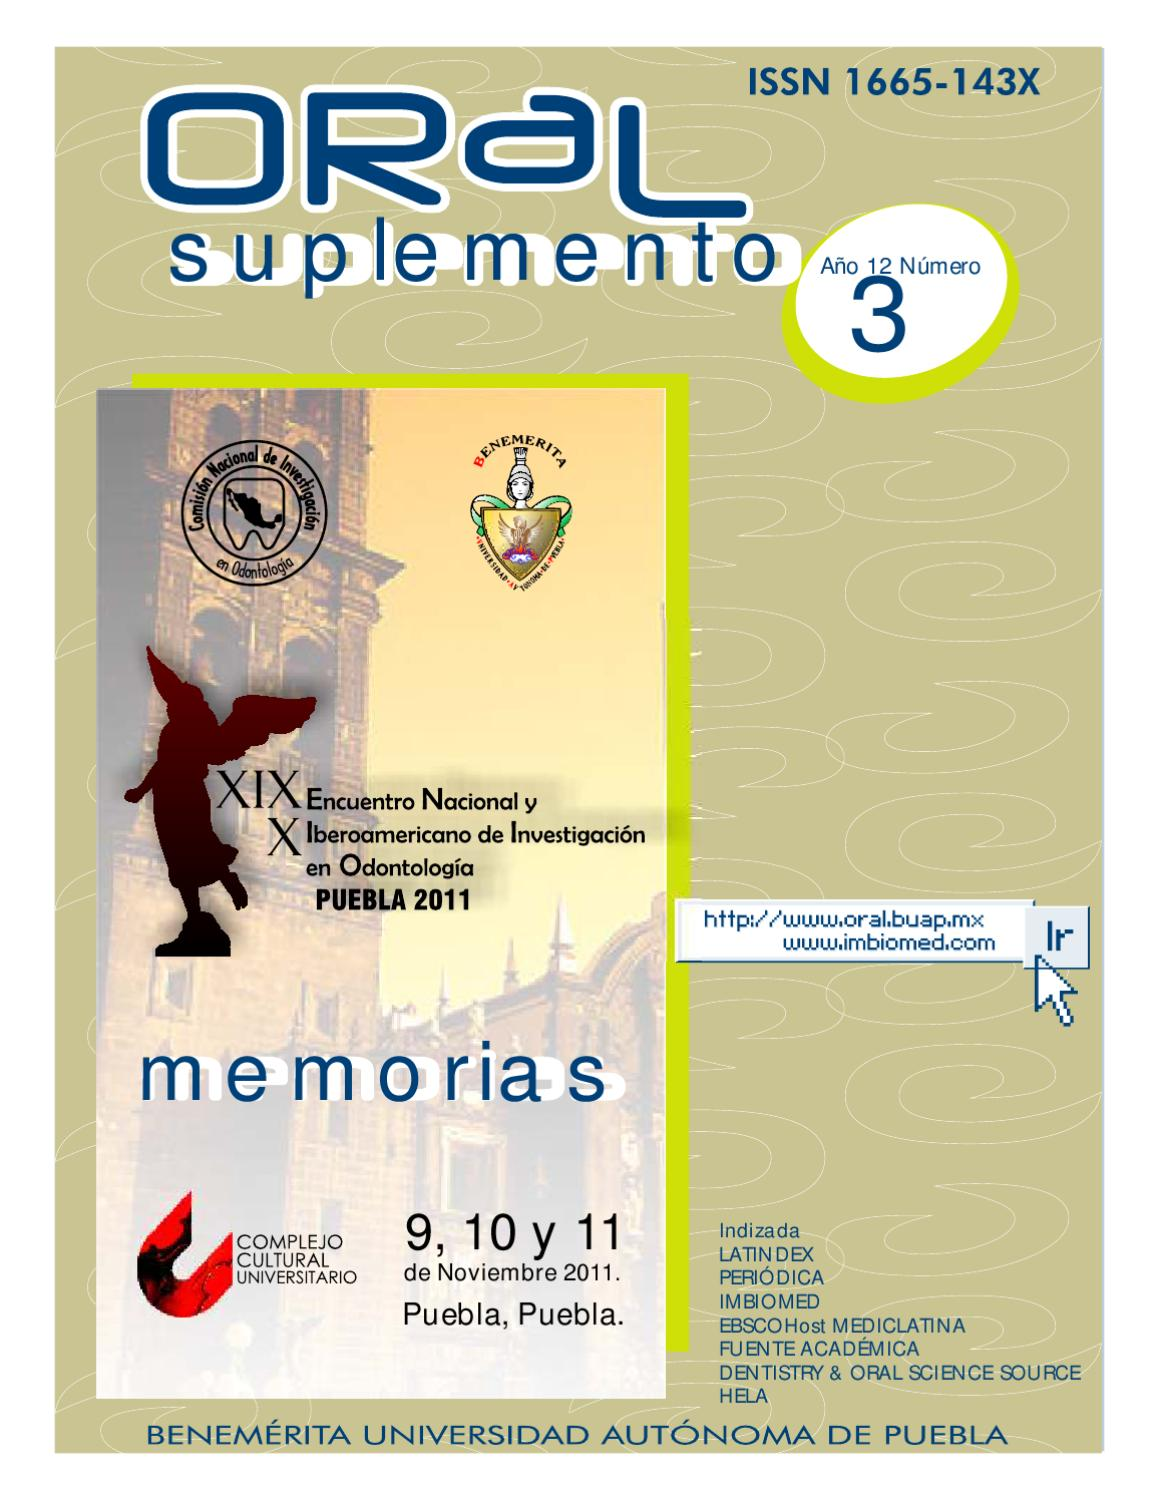 memorias oral3 by enrique huitzil issuu